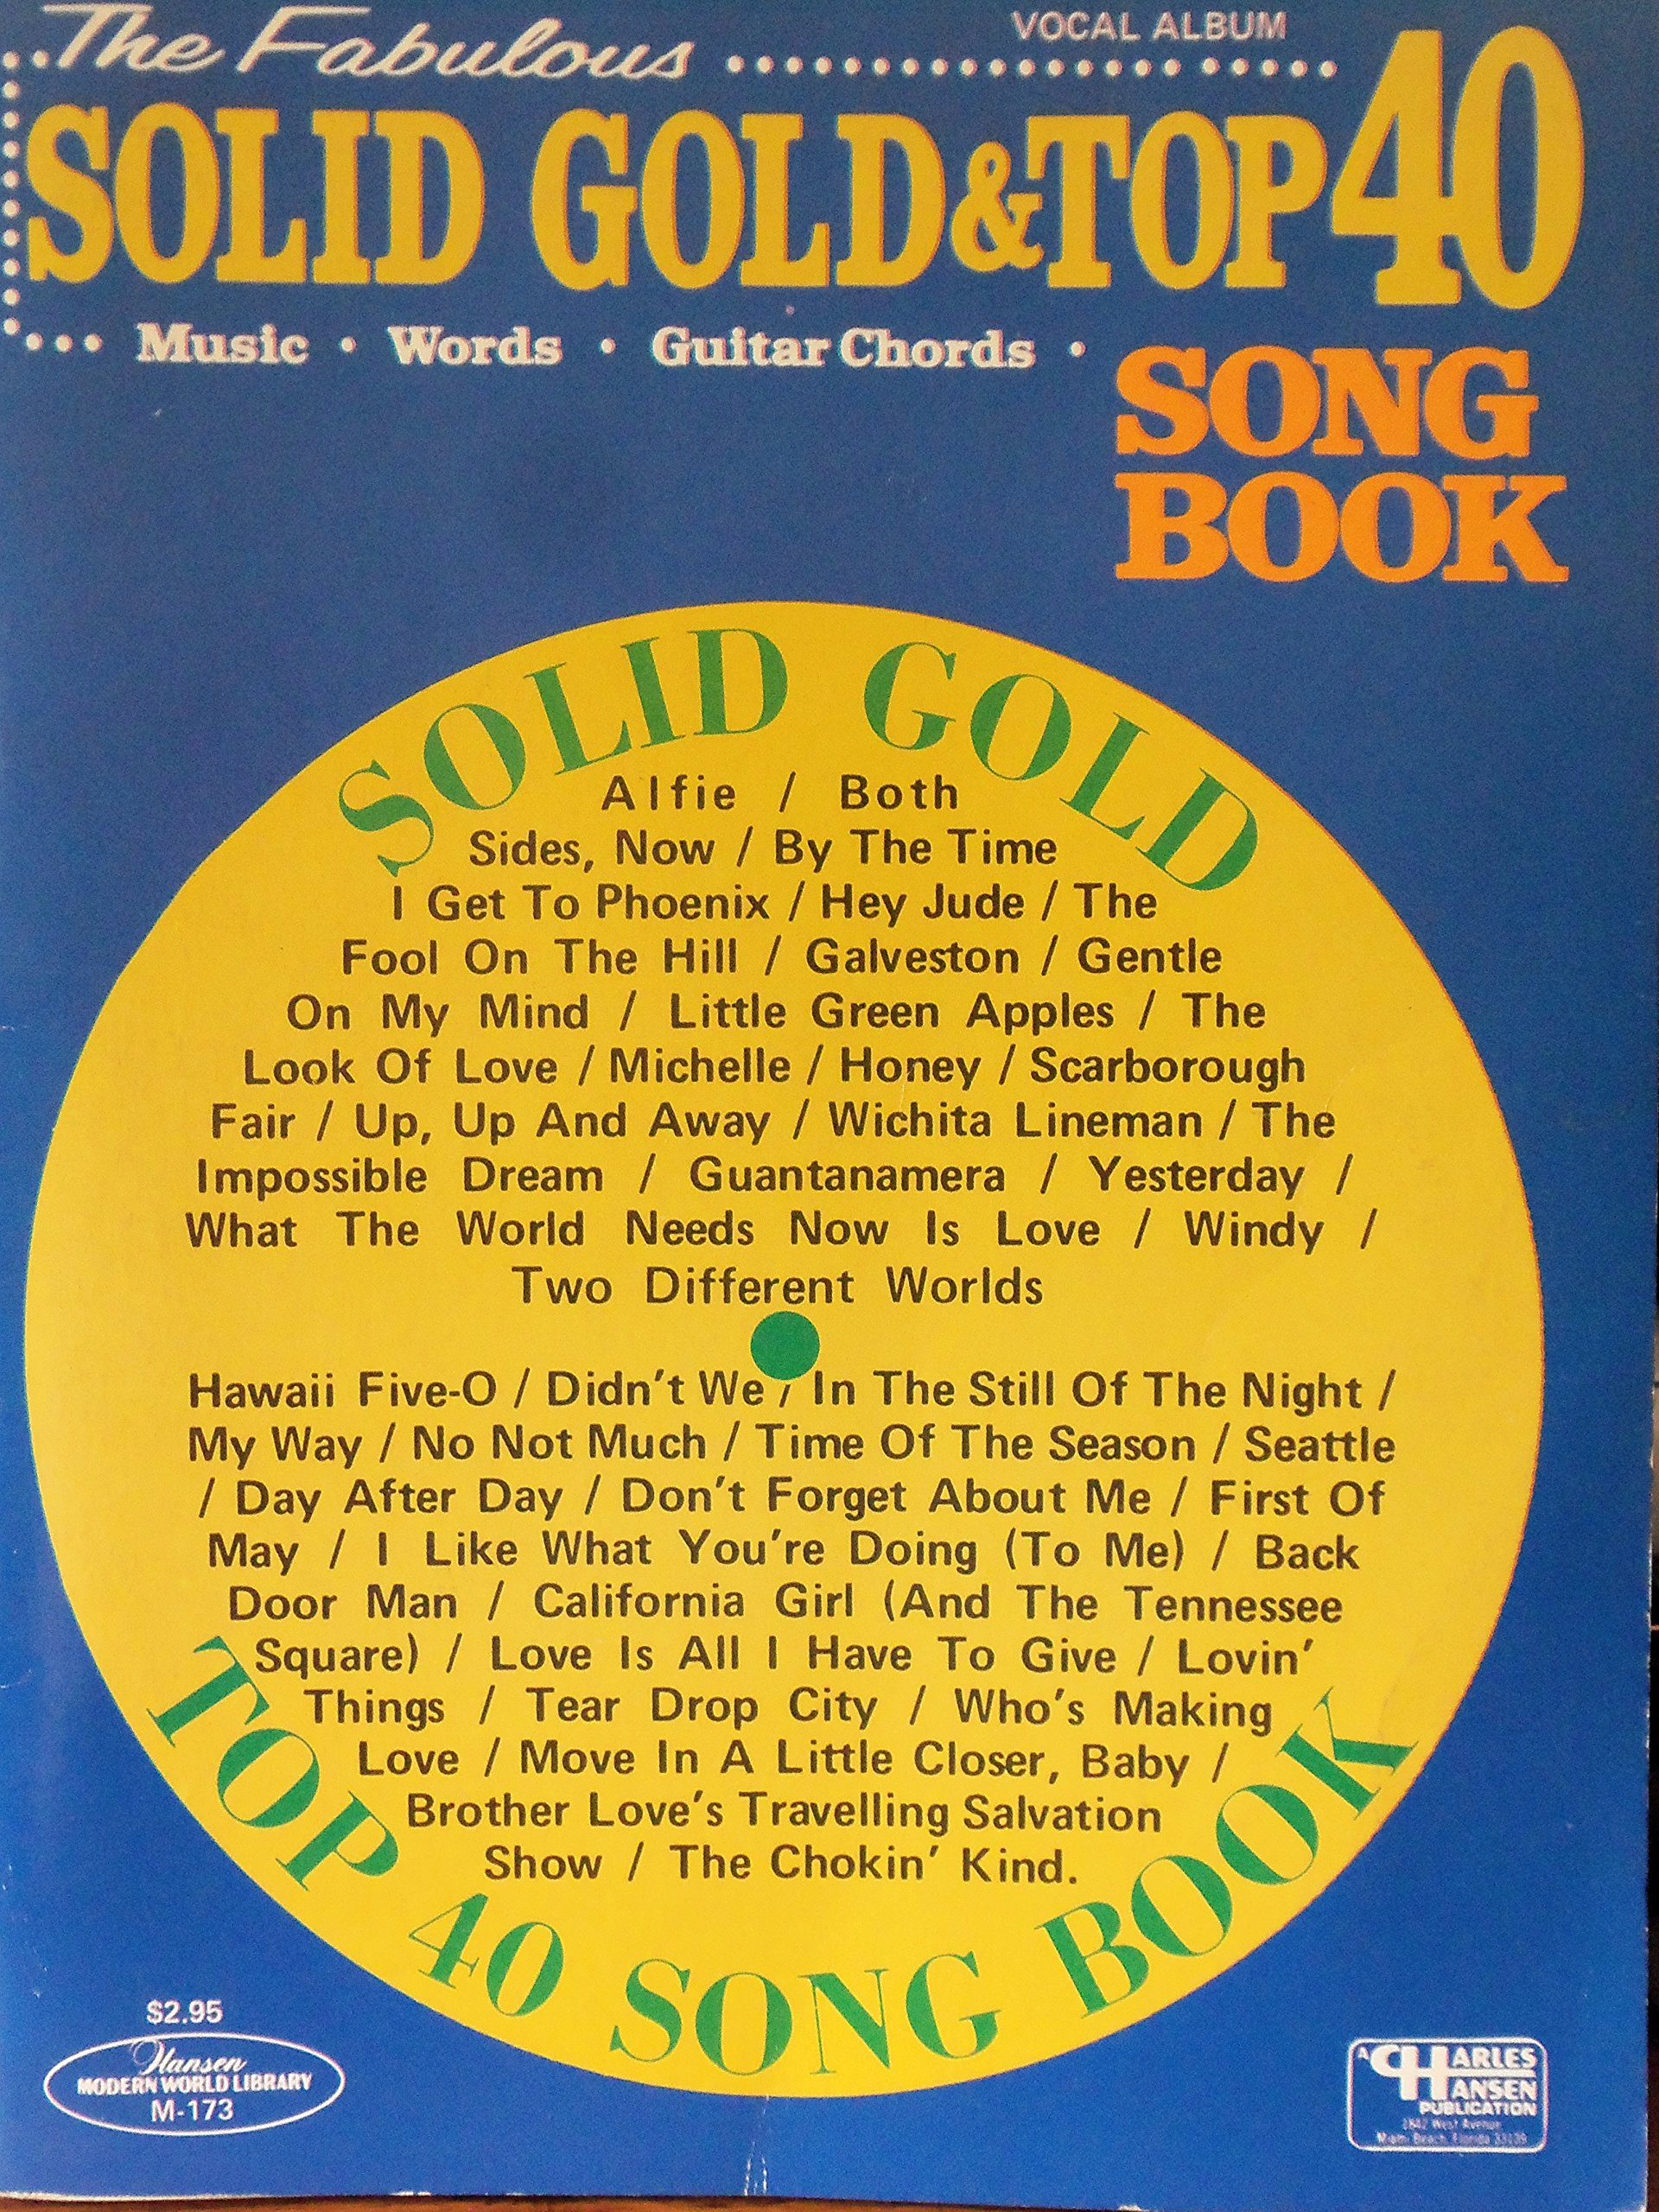 The Second Fabulous Solid Gold Top 40 Song Book 40 Different